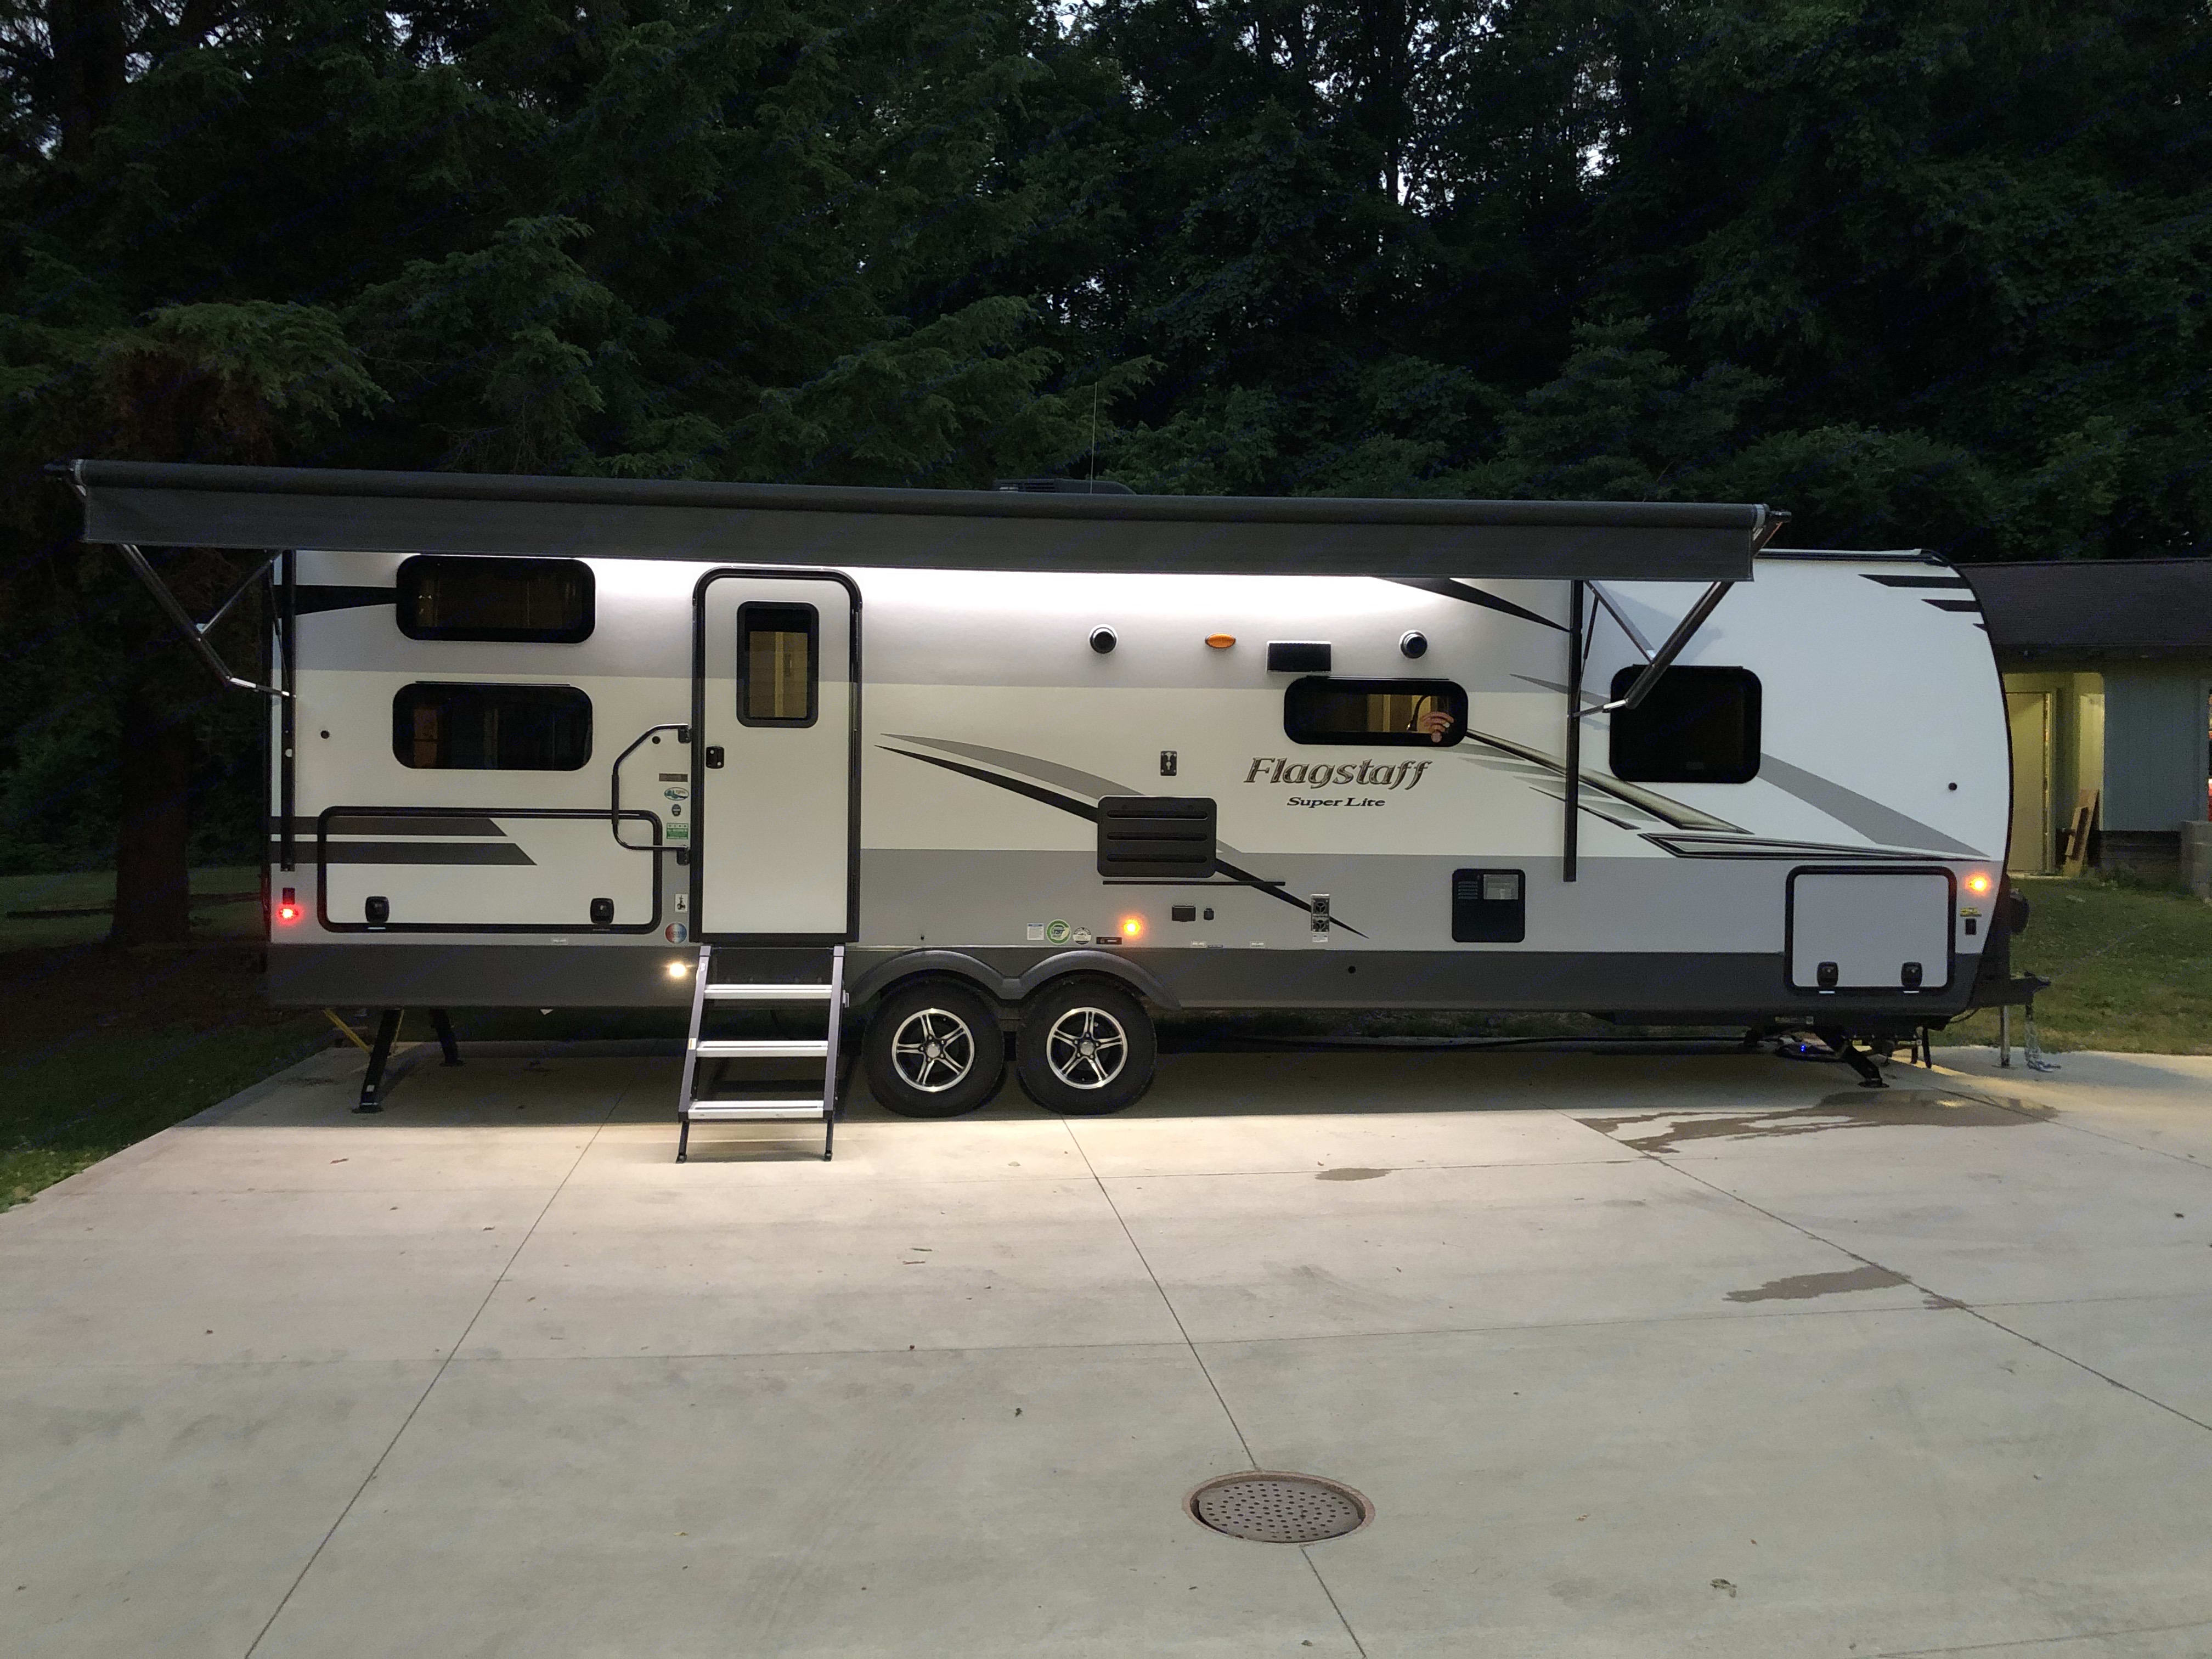 21ft Awning. Forest River Flagstaff Super Lite 2020